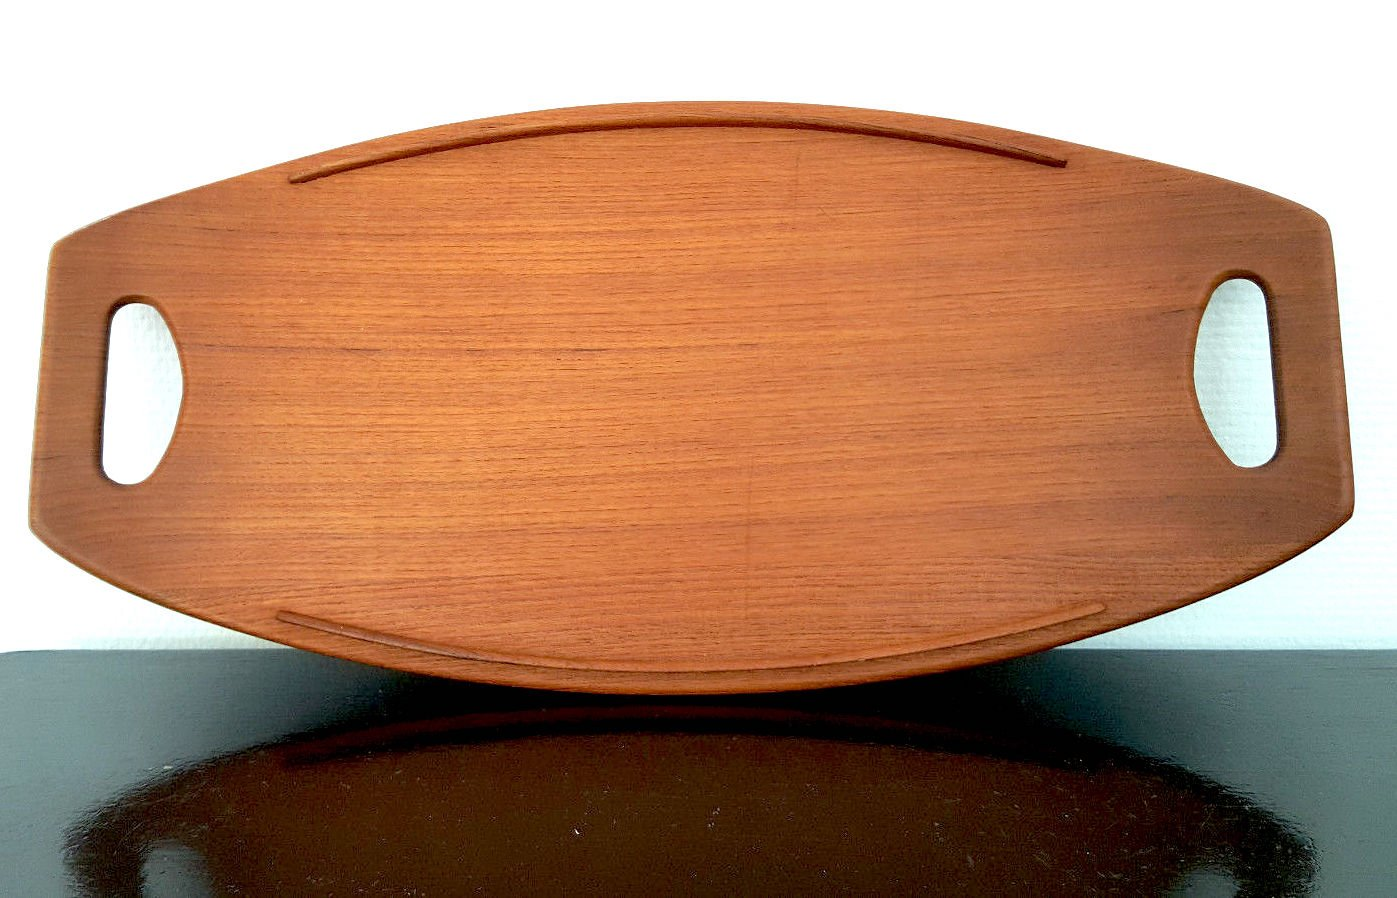 Danish Teak Tray by Jens Quistgaard for Dansk Design, 1960s for sale at Pamono